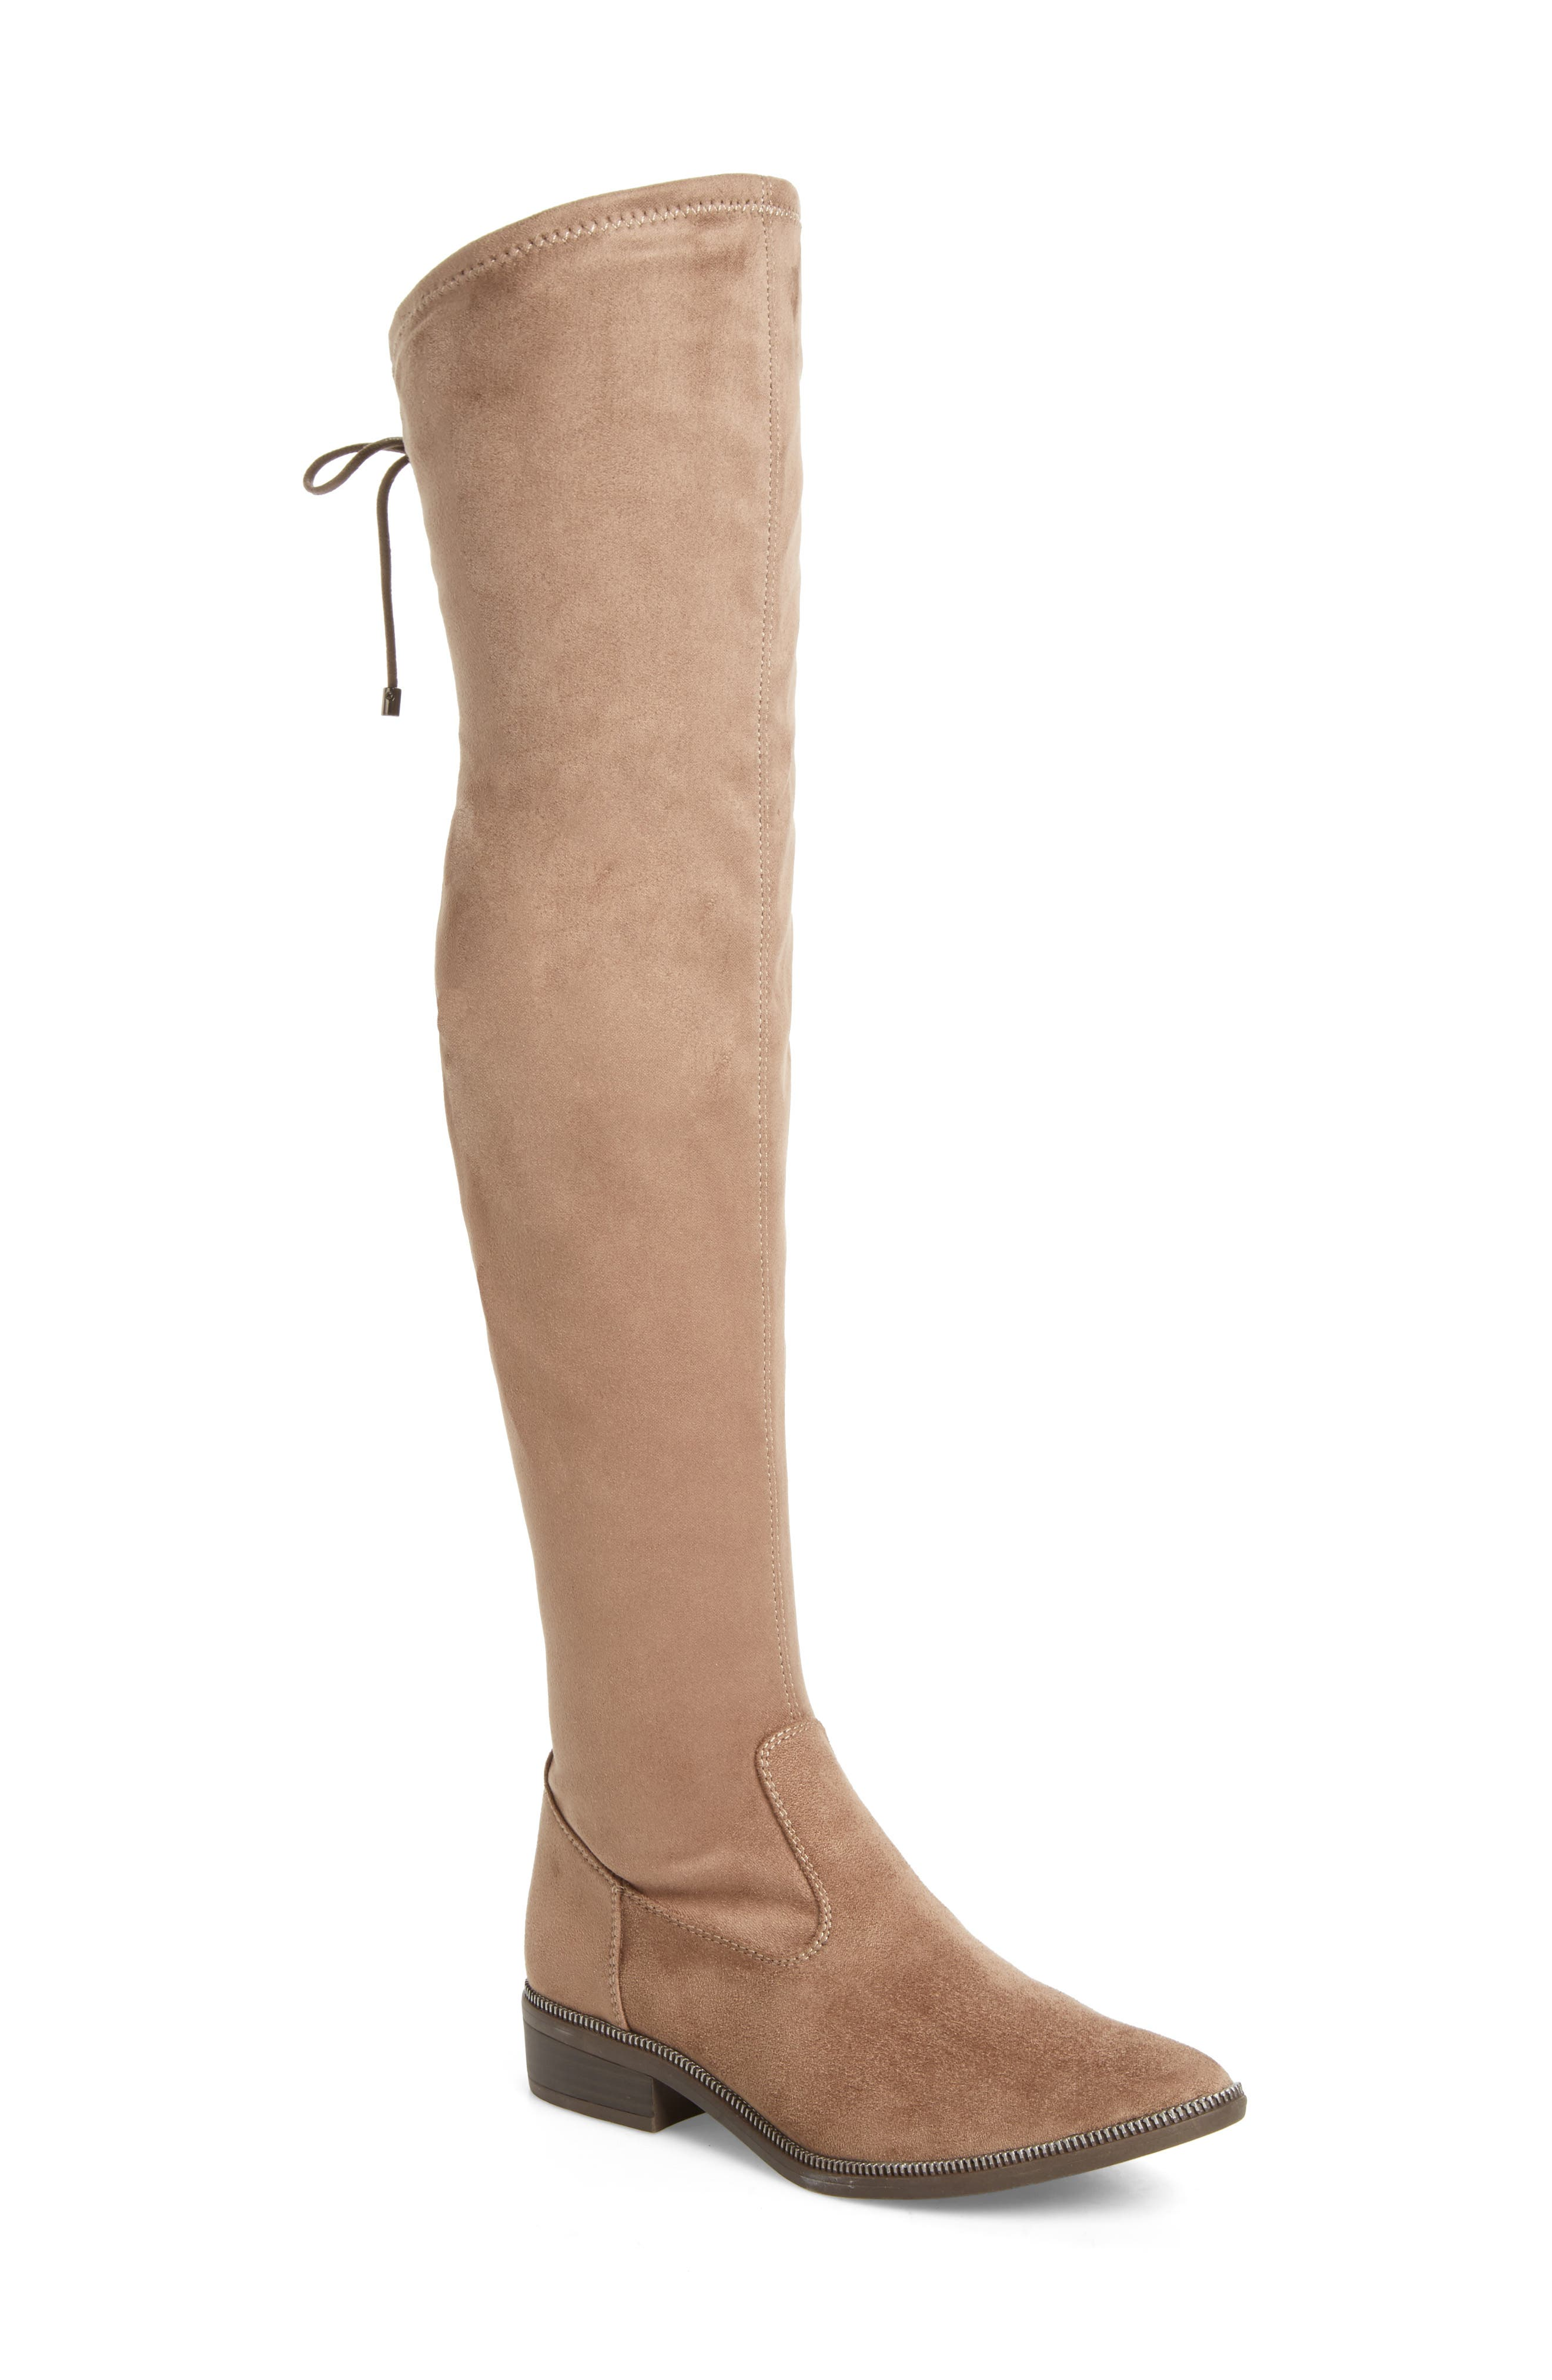 Phanie Over the Knee Stretch Boot,                             Main thumbnail 1, color,                             Dune Fabric